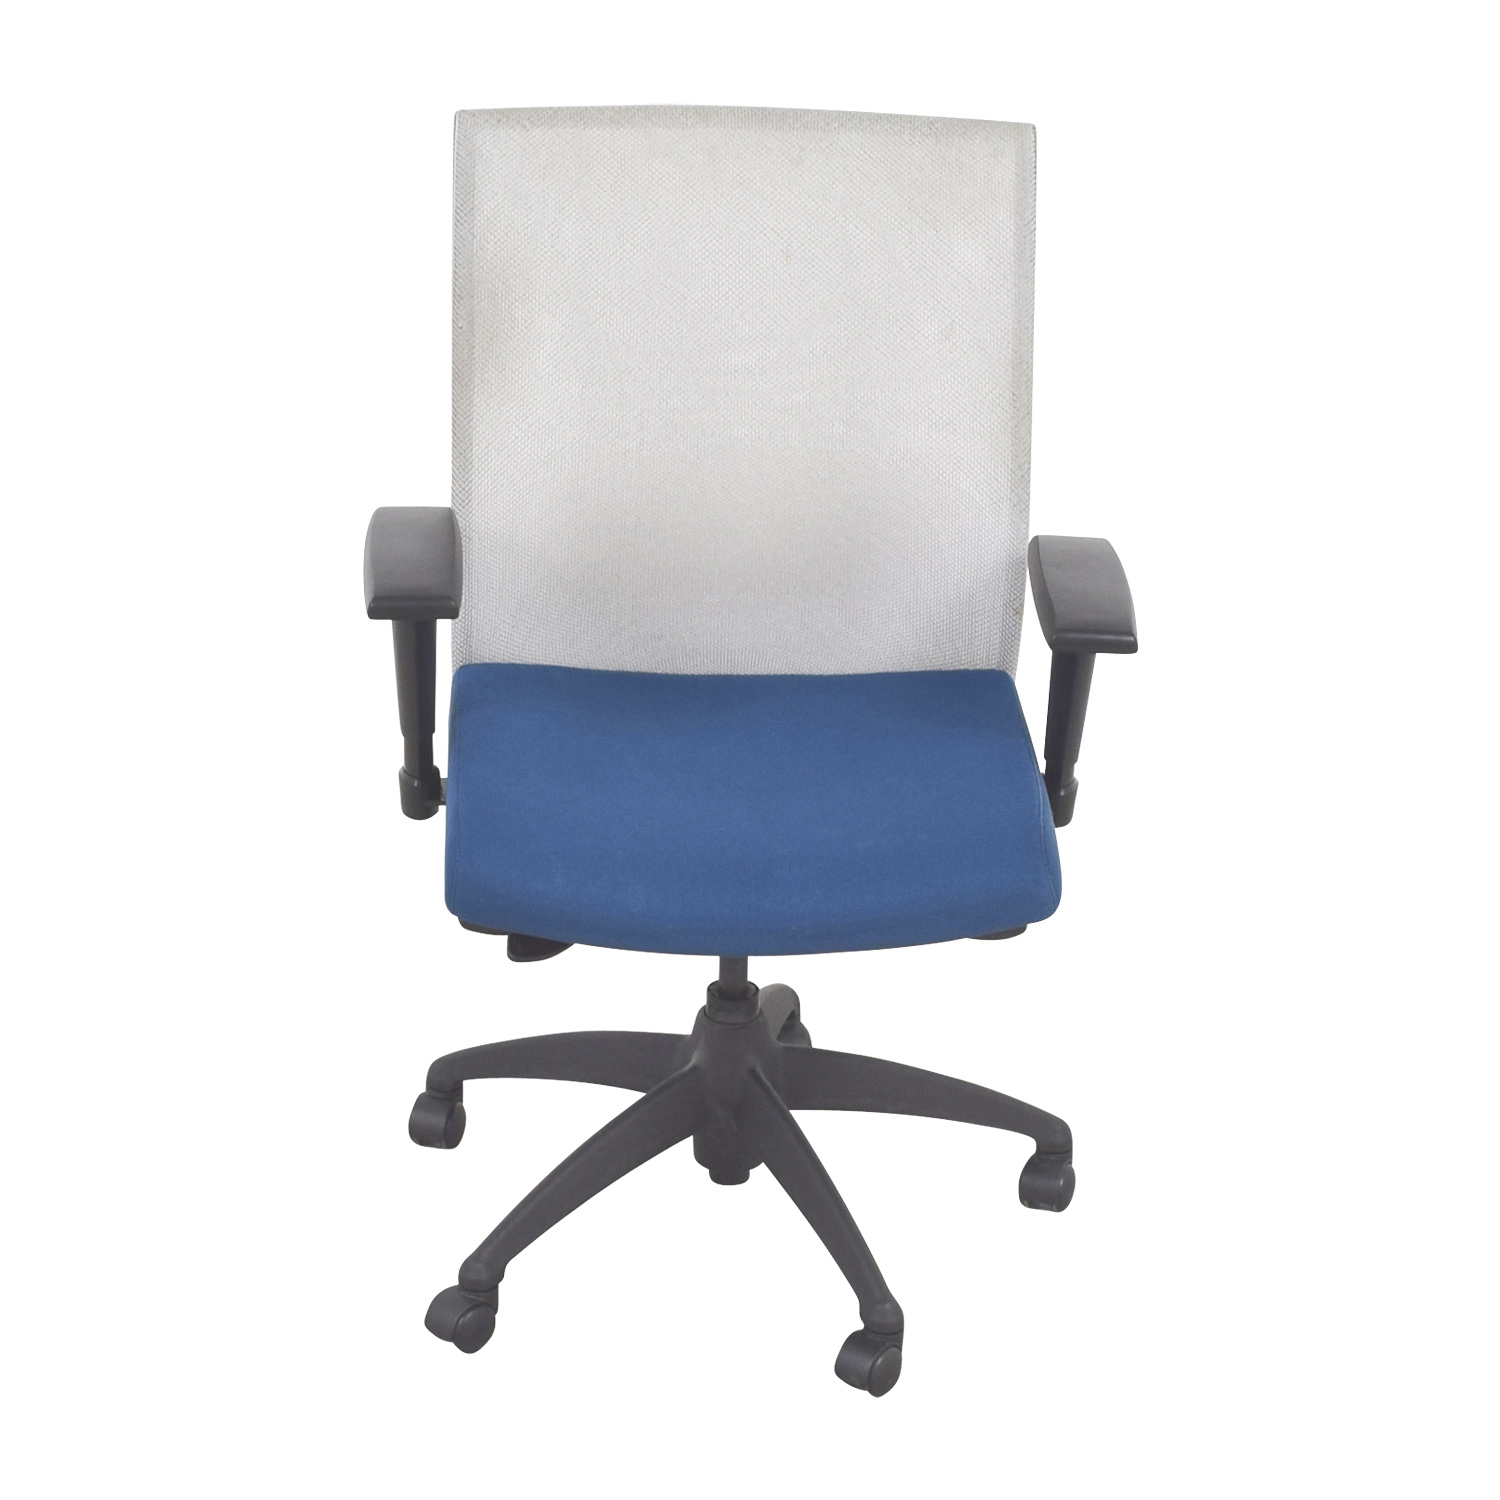 Stylex Stylex Blue Adjustable Arms Task Chair for sale